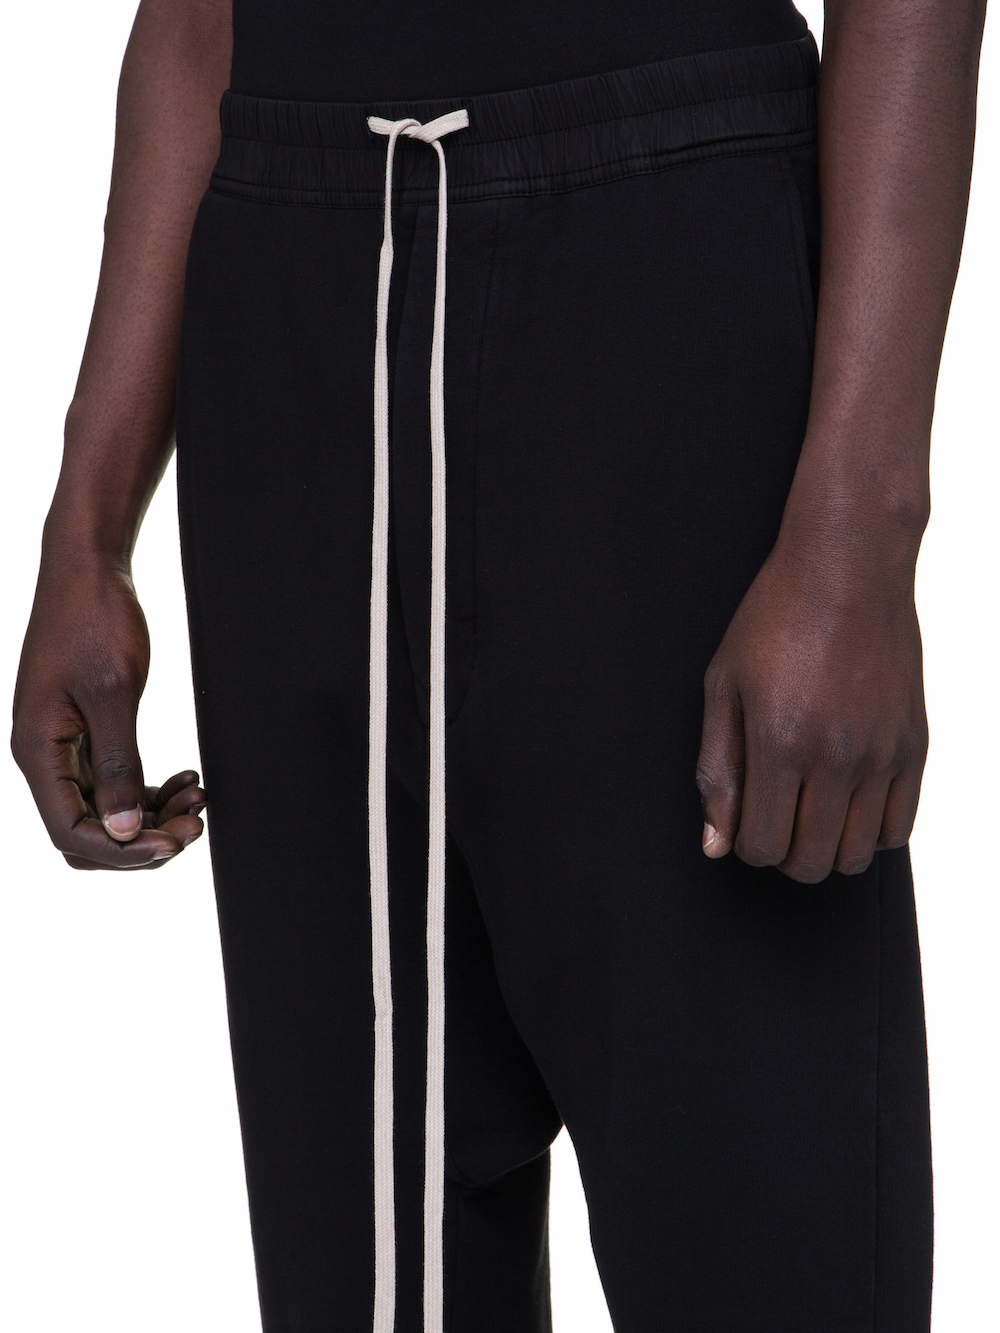 DRKSHDW FW18 SISYPHUS DRAWSTRING CROPPED PANTS IN BLACK